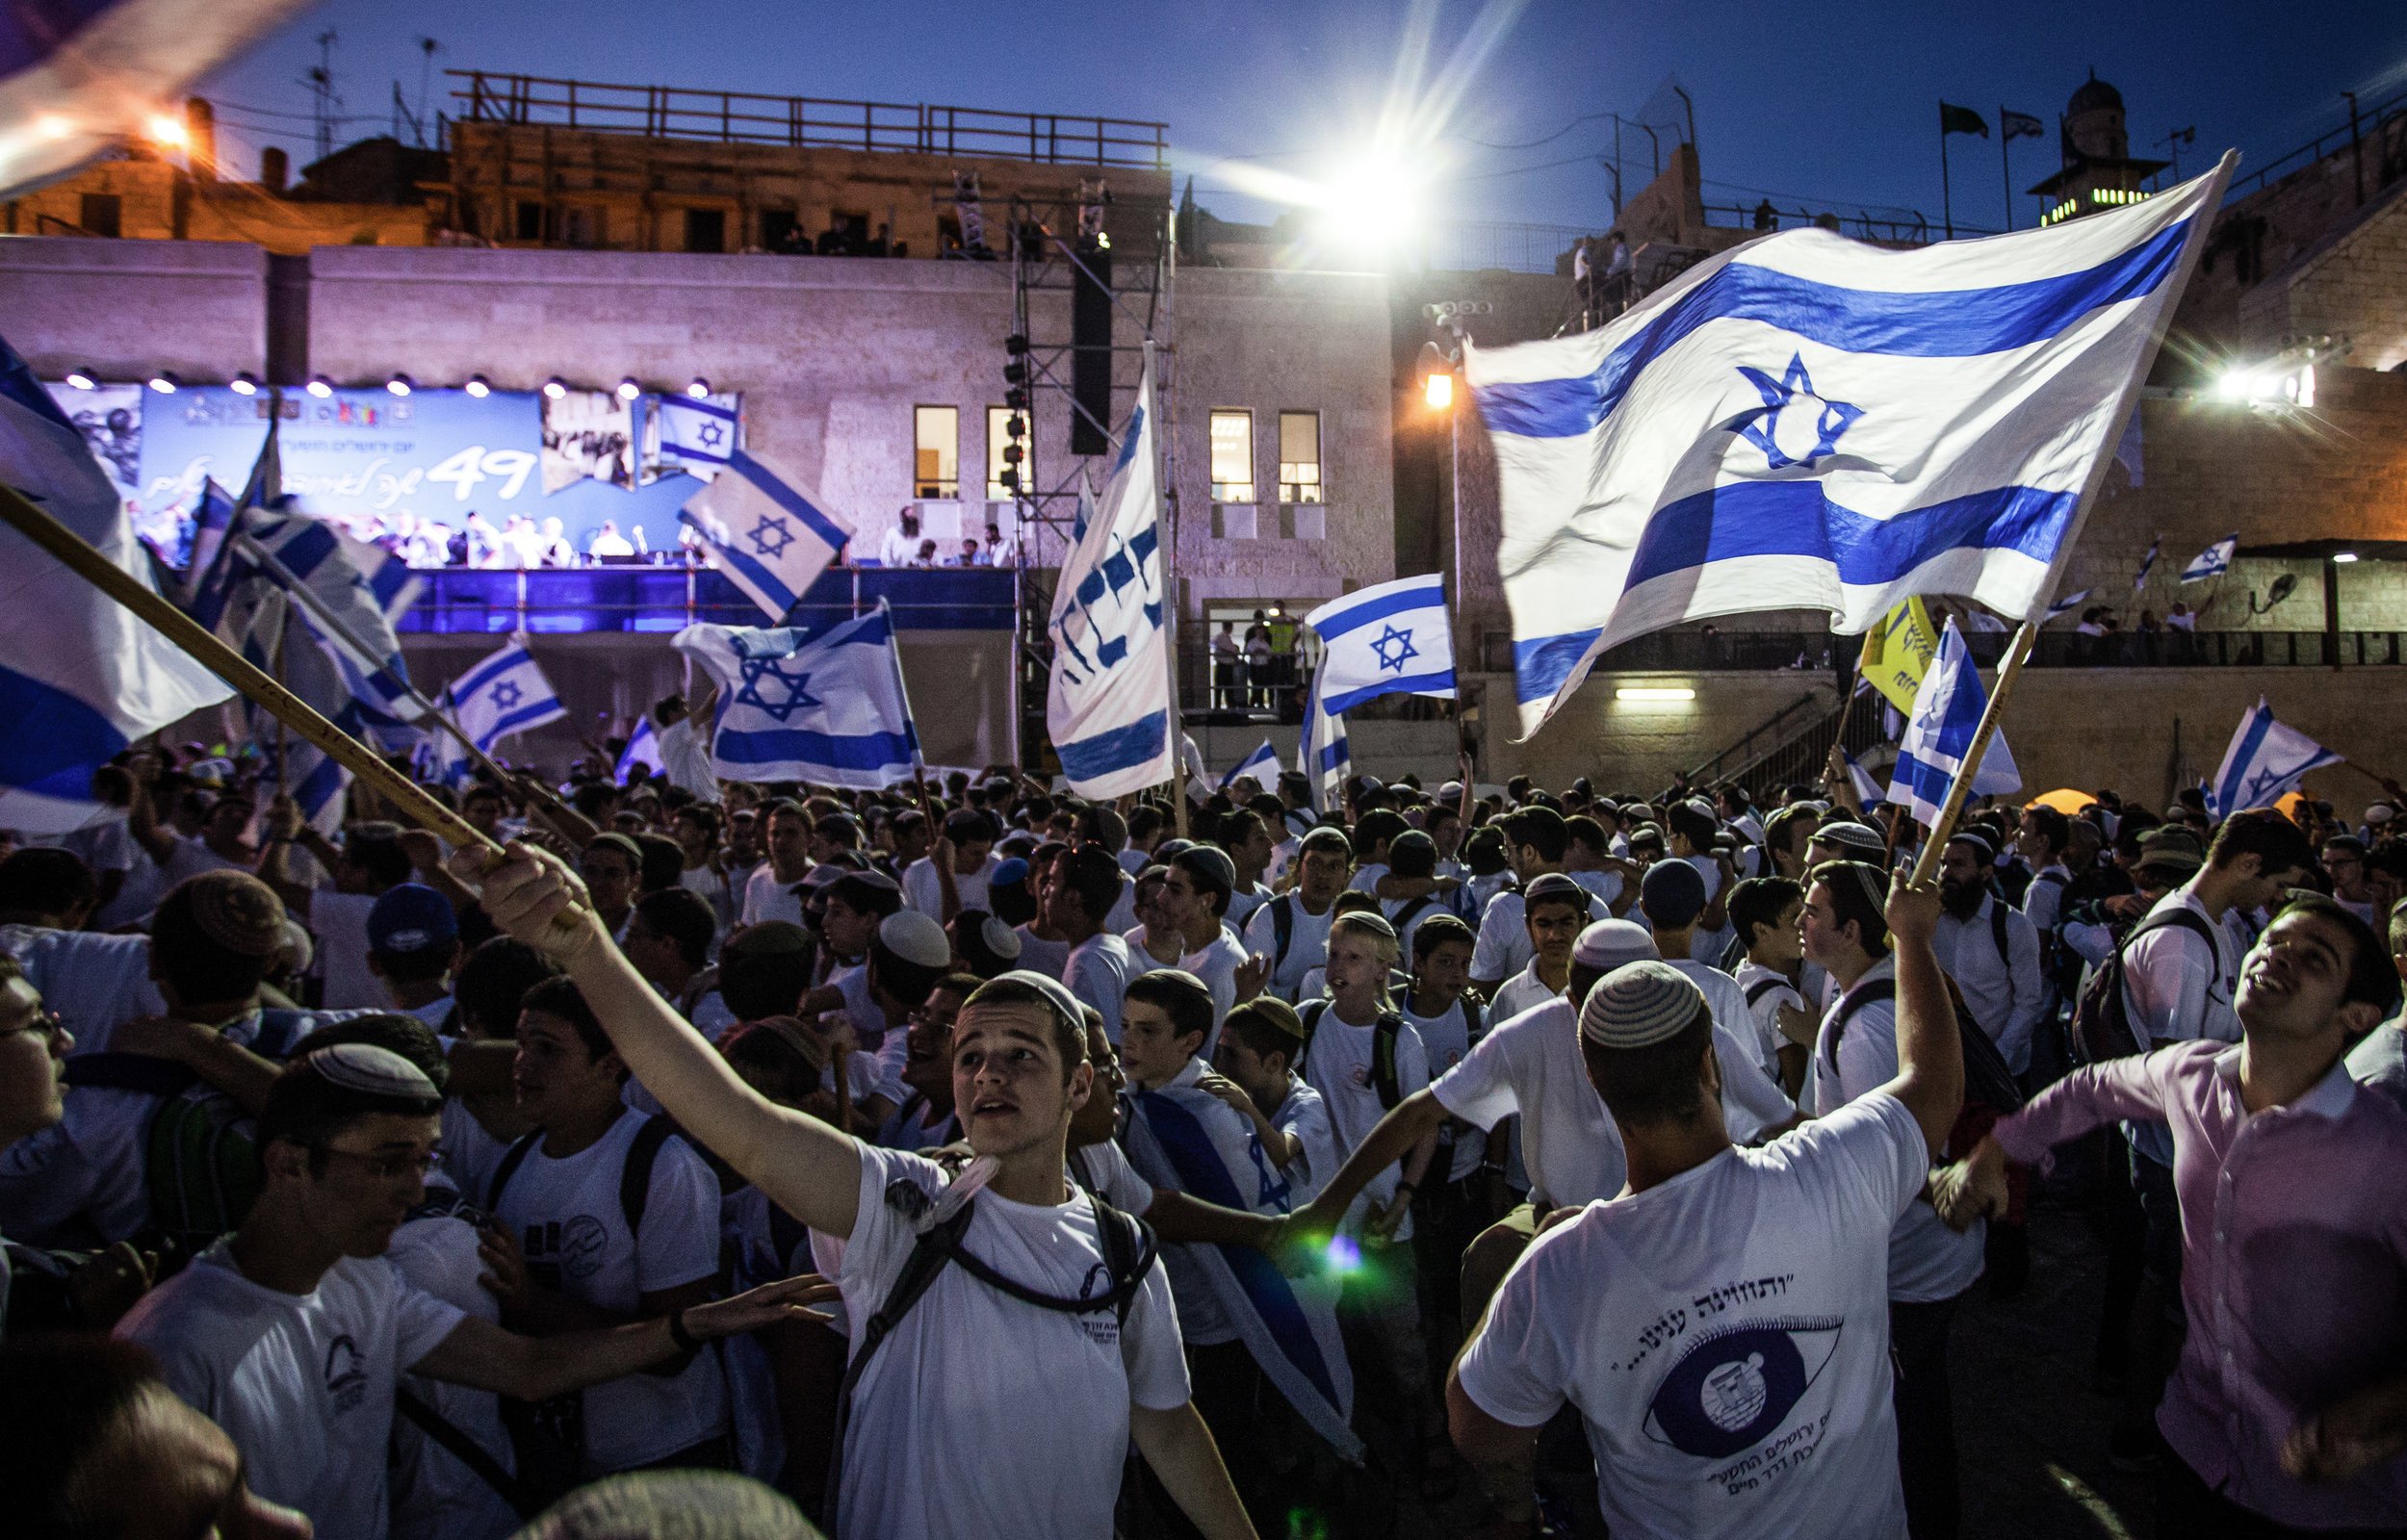 Jewish boys dance and wave Israeli flags near the Western Wall in the Old City of Jerusalem as part of celebrations for Jerusalem Day, June 5, 2016. The holiday signifies the day when Jerusalem was unified with the Israeli state as a result of the Six-Day-War in 1967. This year the holiday happened to fall very close to the beginning of the Muslim holiday of Ramadan, further highlighting the controversial nature of the celebration. Advocates of the day see it as a day of significant triumph for the Israeli state and Jewish culture while opponents view it as a crude display of nationalistic gloating. Even with the controversial date this year, though, there were no significant instances of violence.